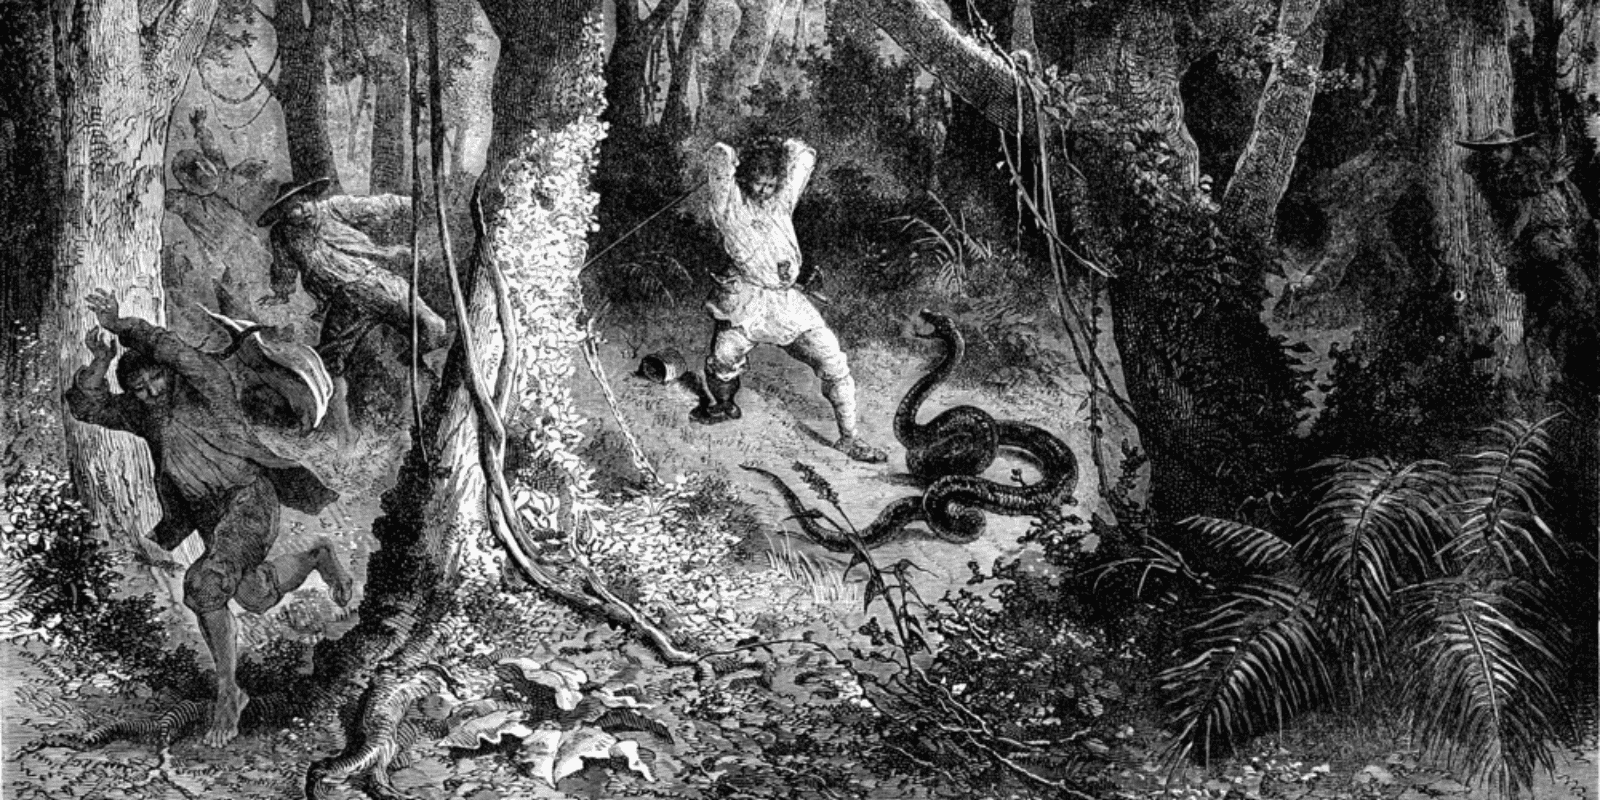 Painting of men chasing by snakes in a forest